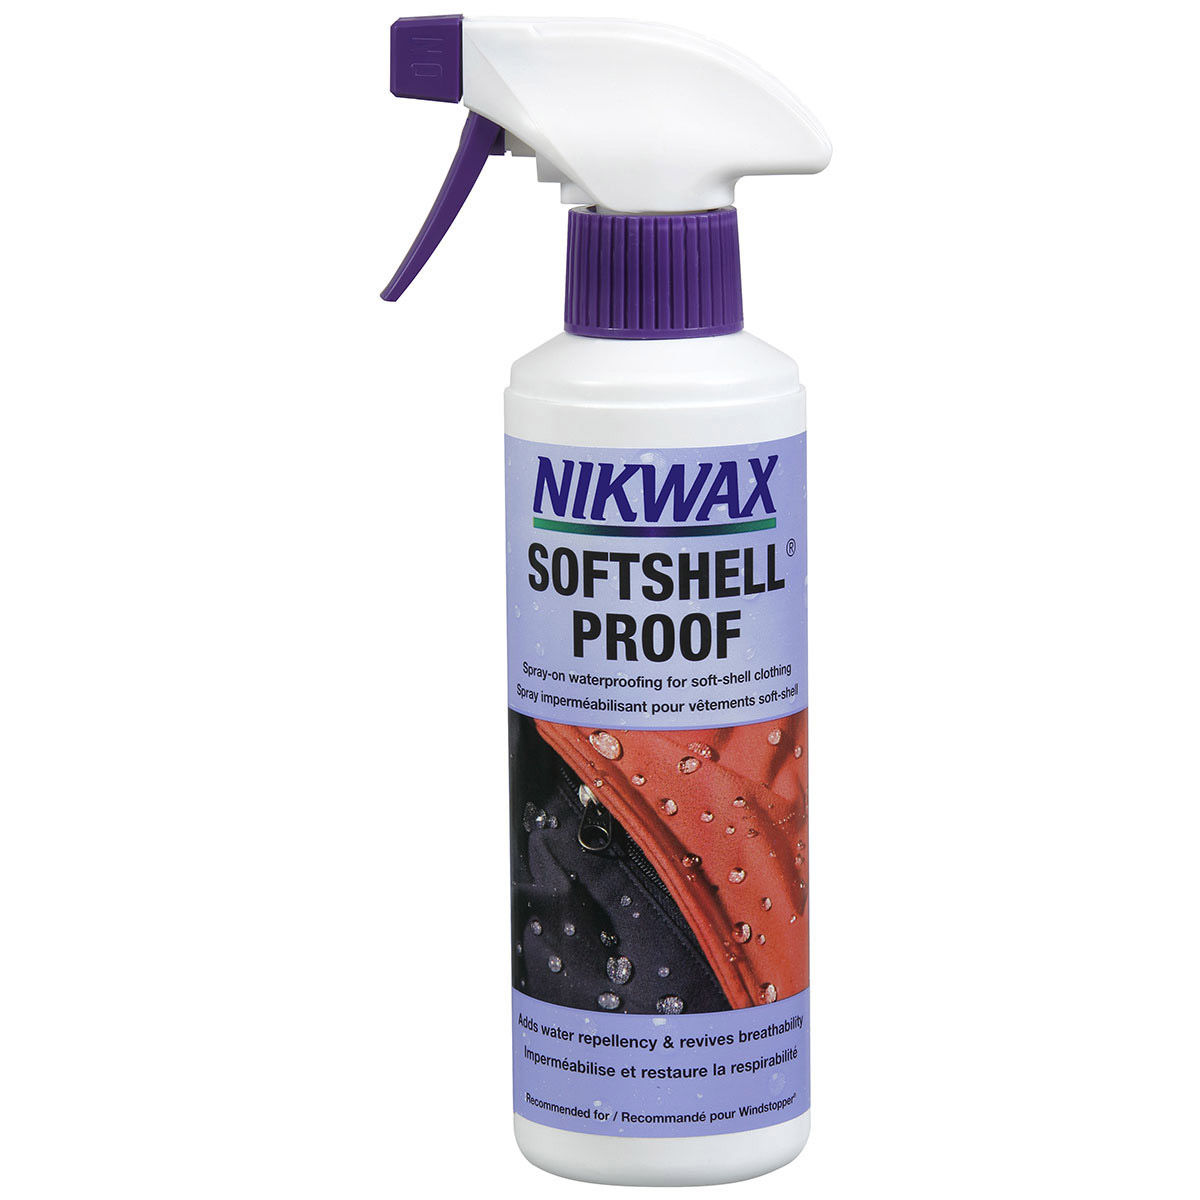 Nikwax SoftShell Proof Spray-On